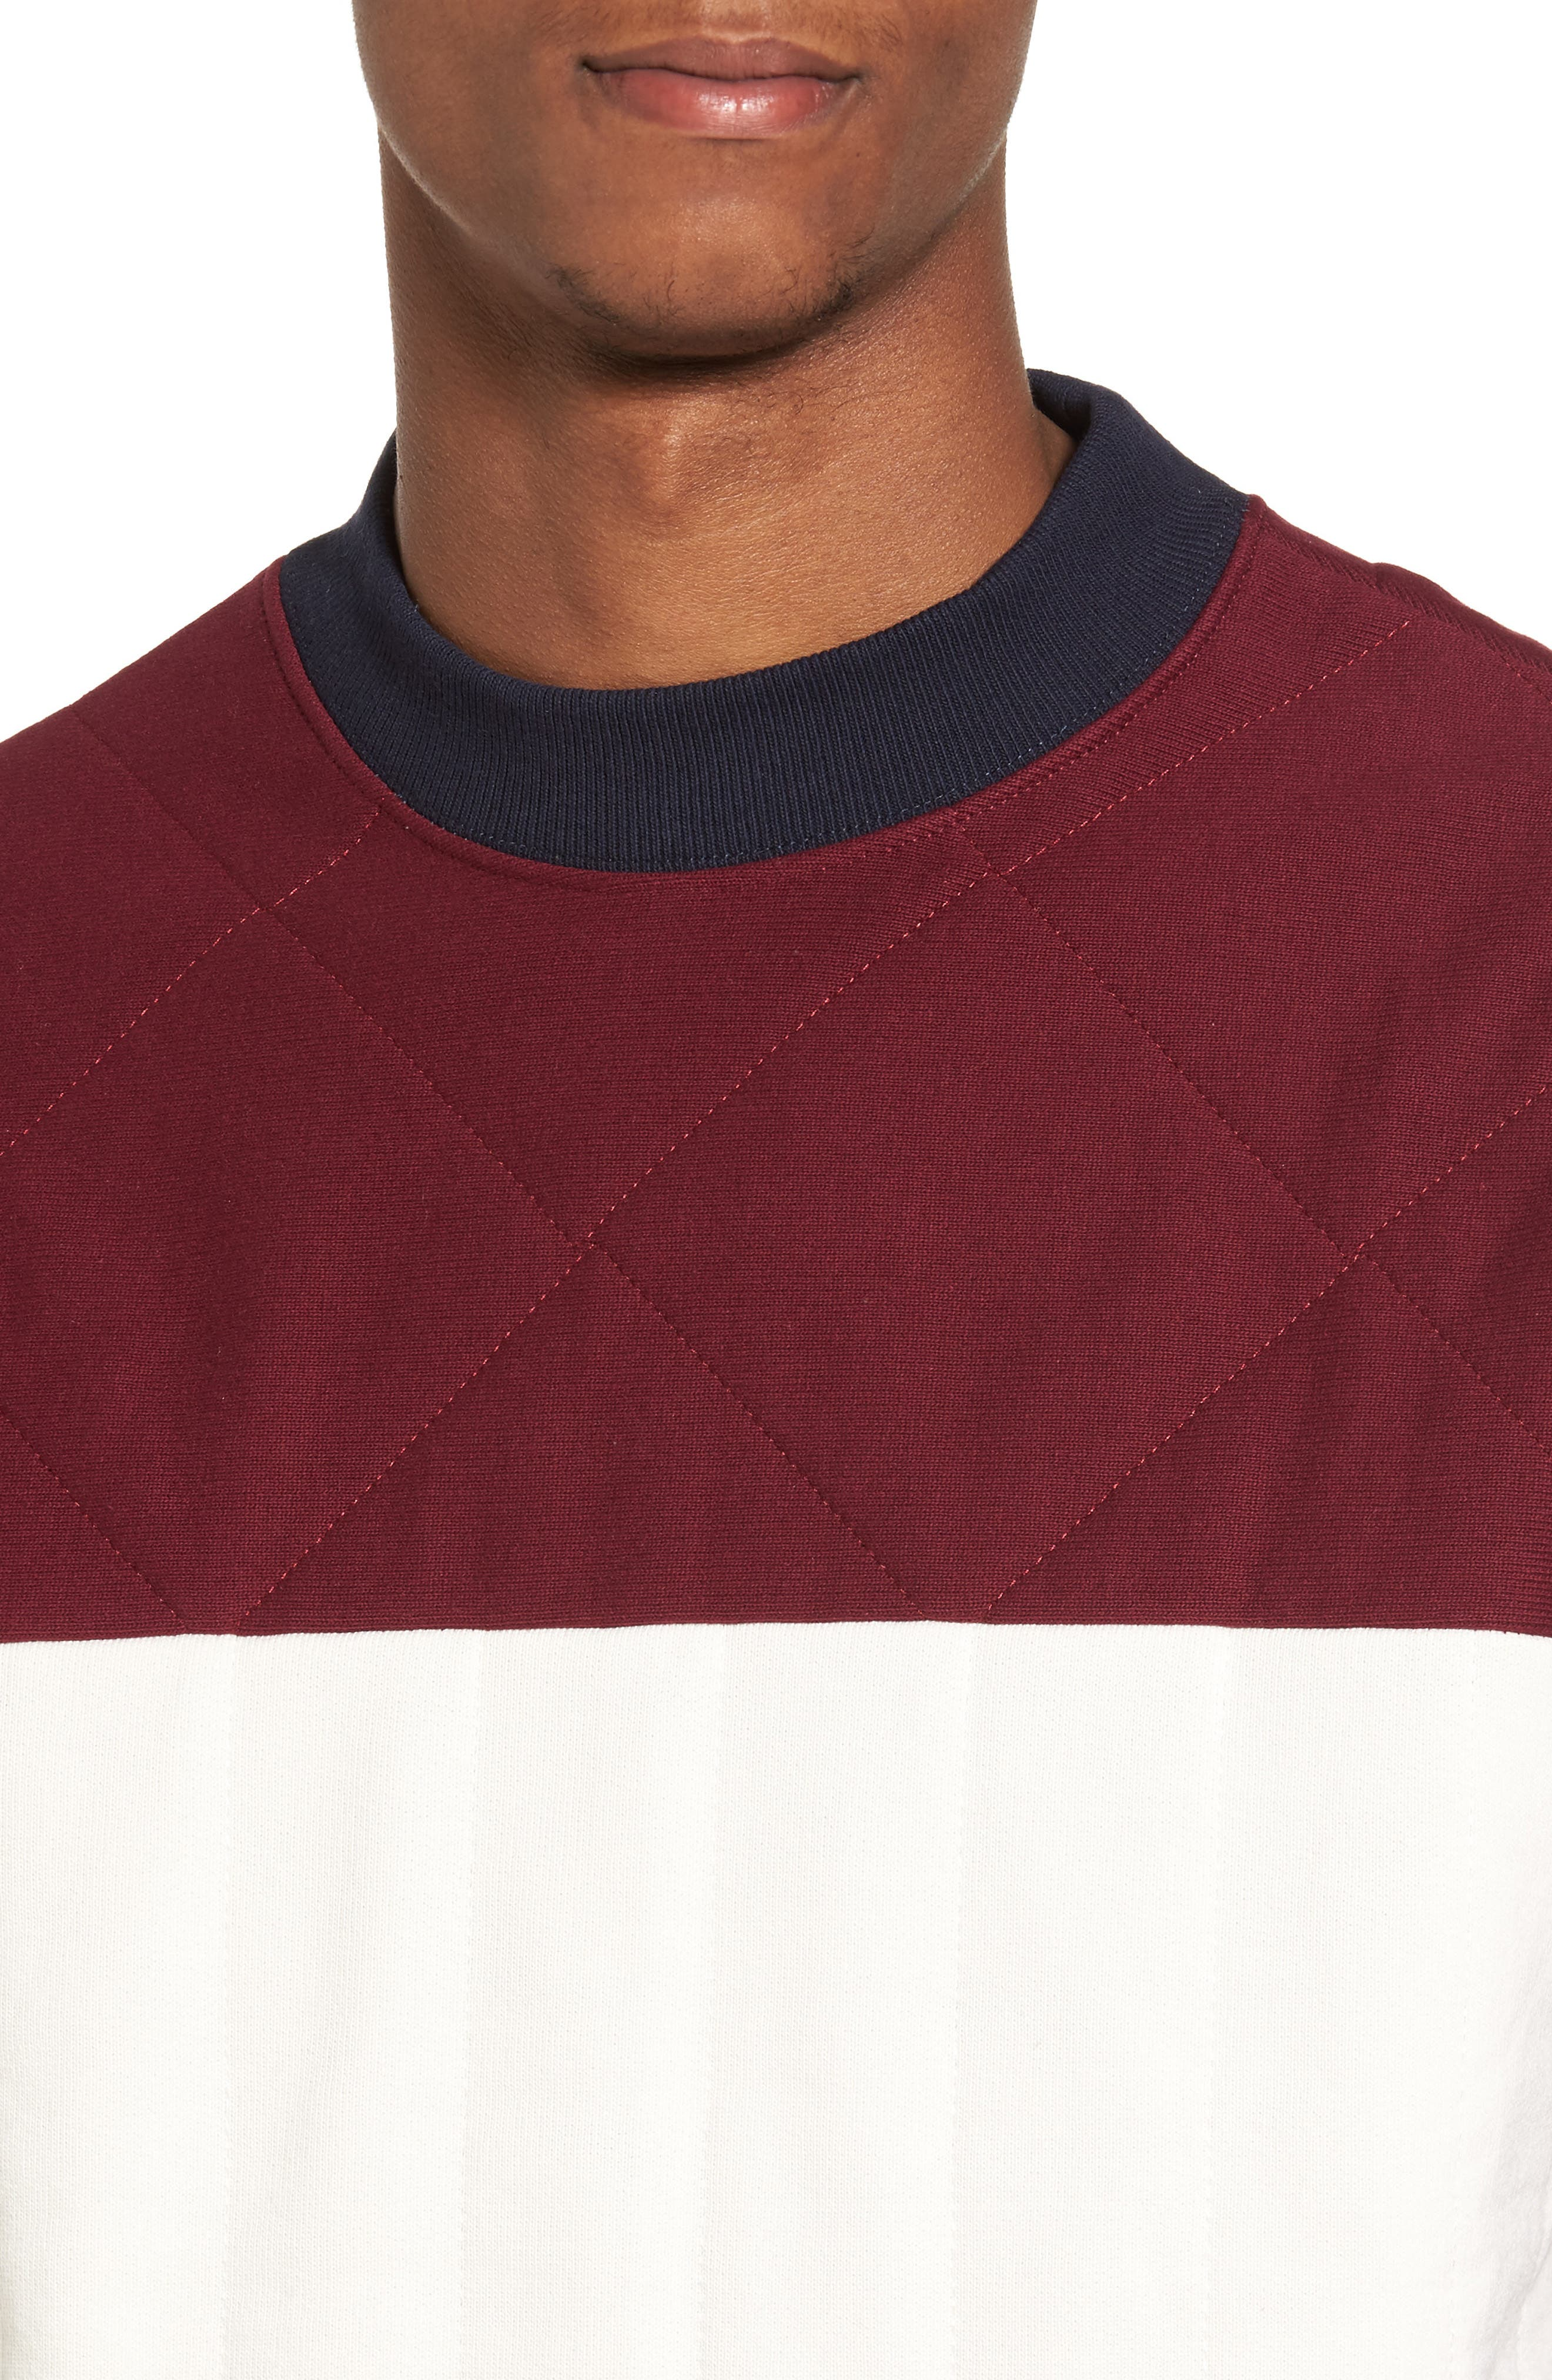 Quilted Colorblock Sweatshirt,                             Alternate thumbnail 4, color,                             Burgundy